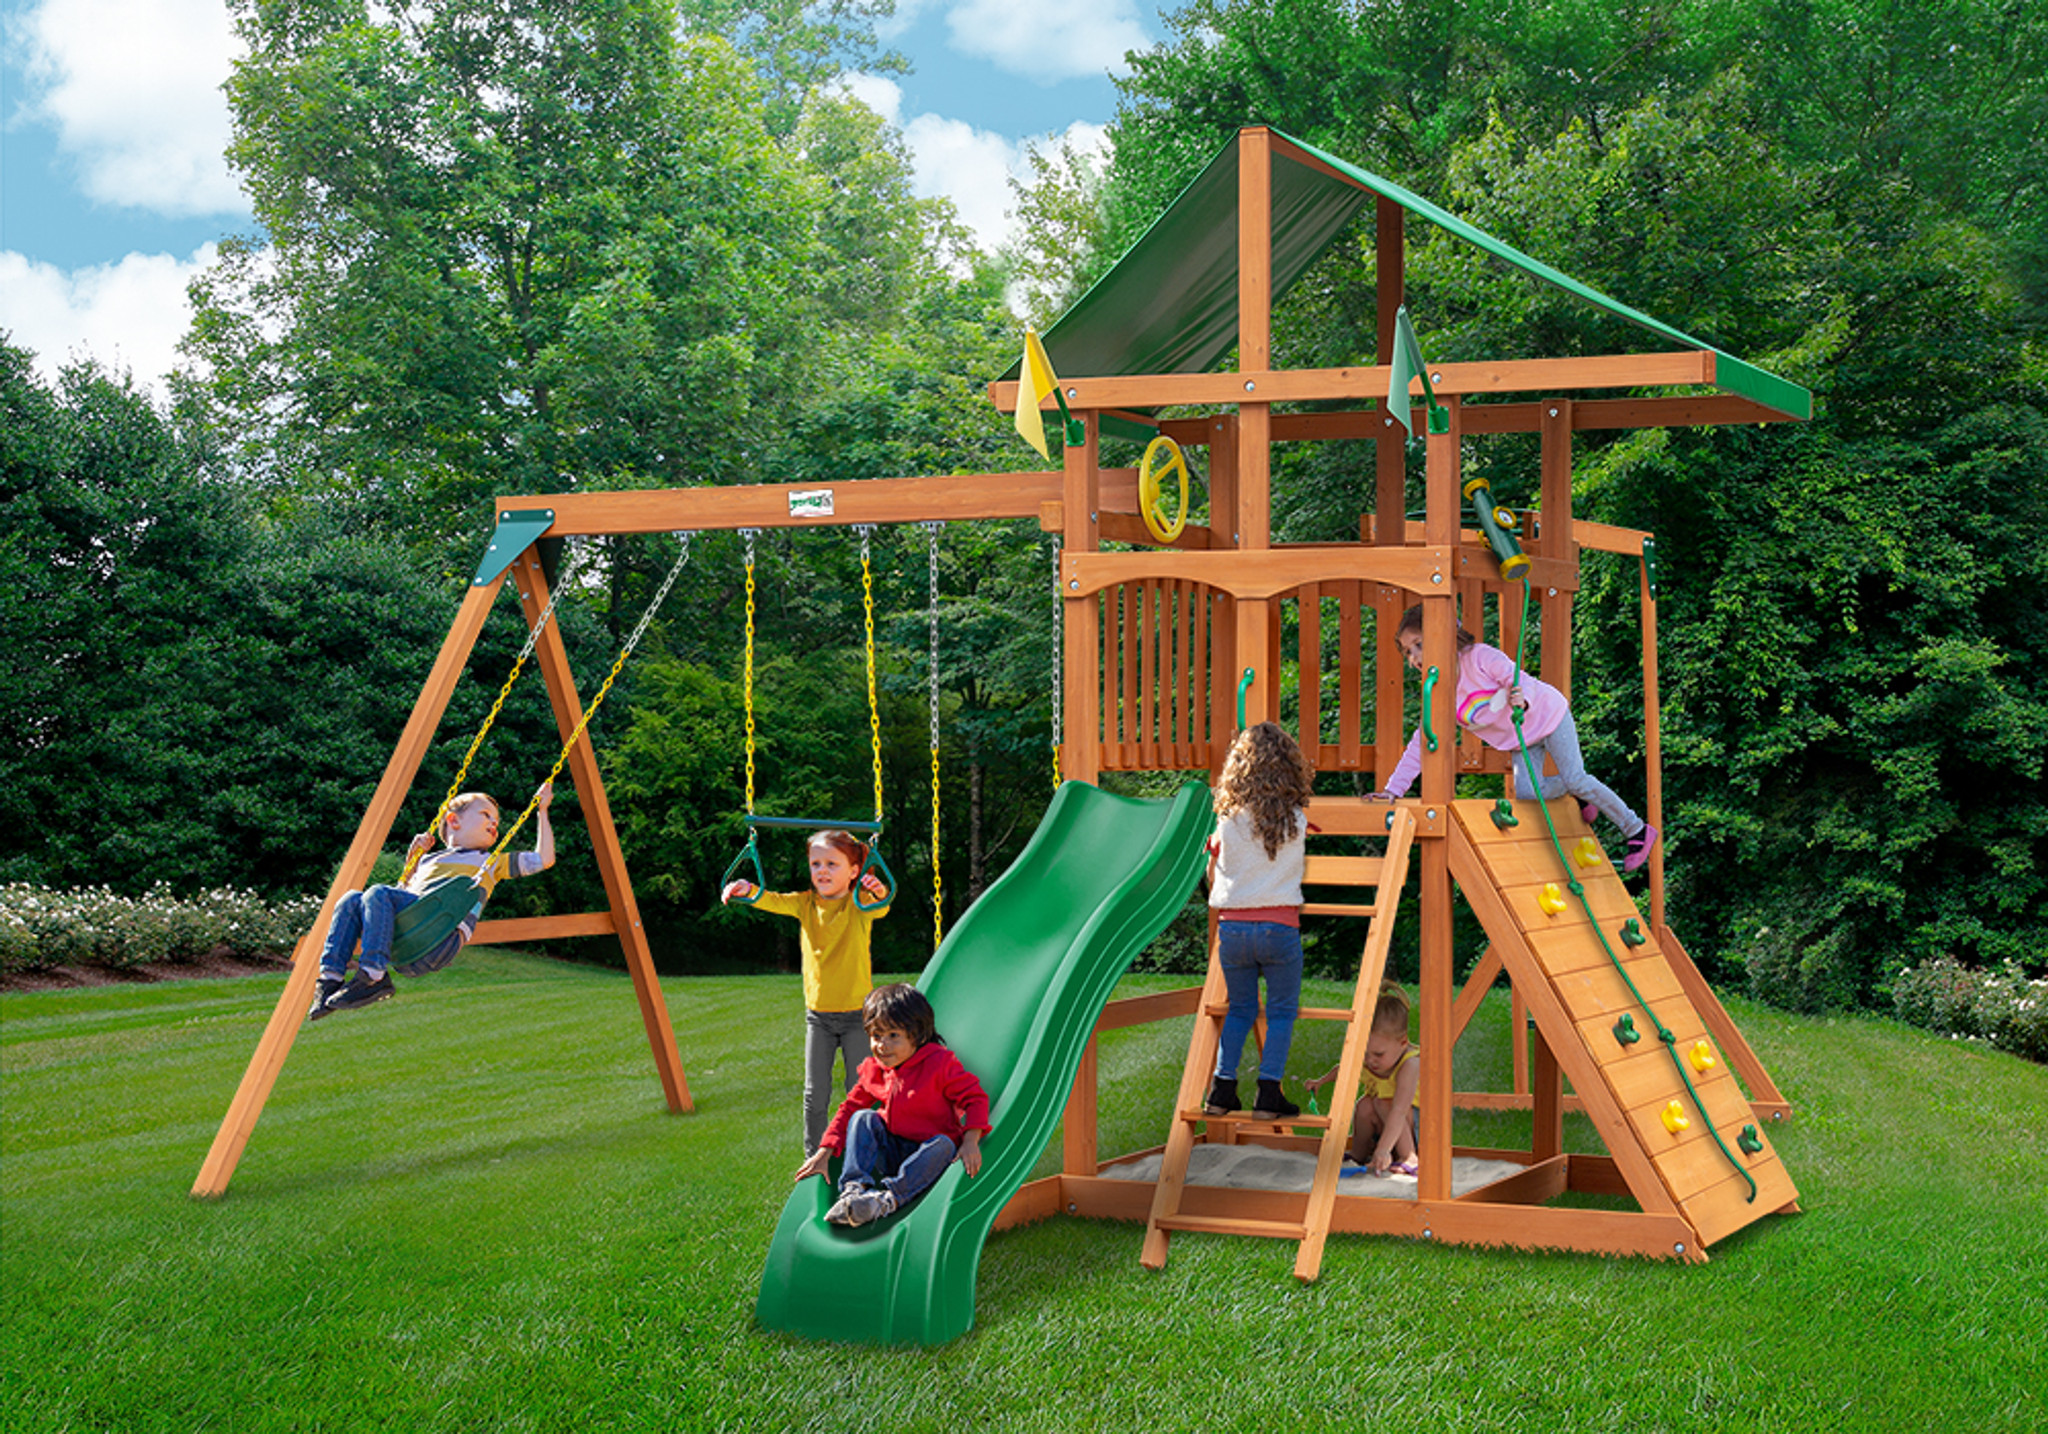 Outside view of Outing w/ Monkey Bars Swingset from Playnation